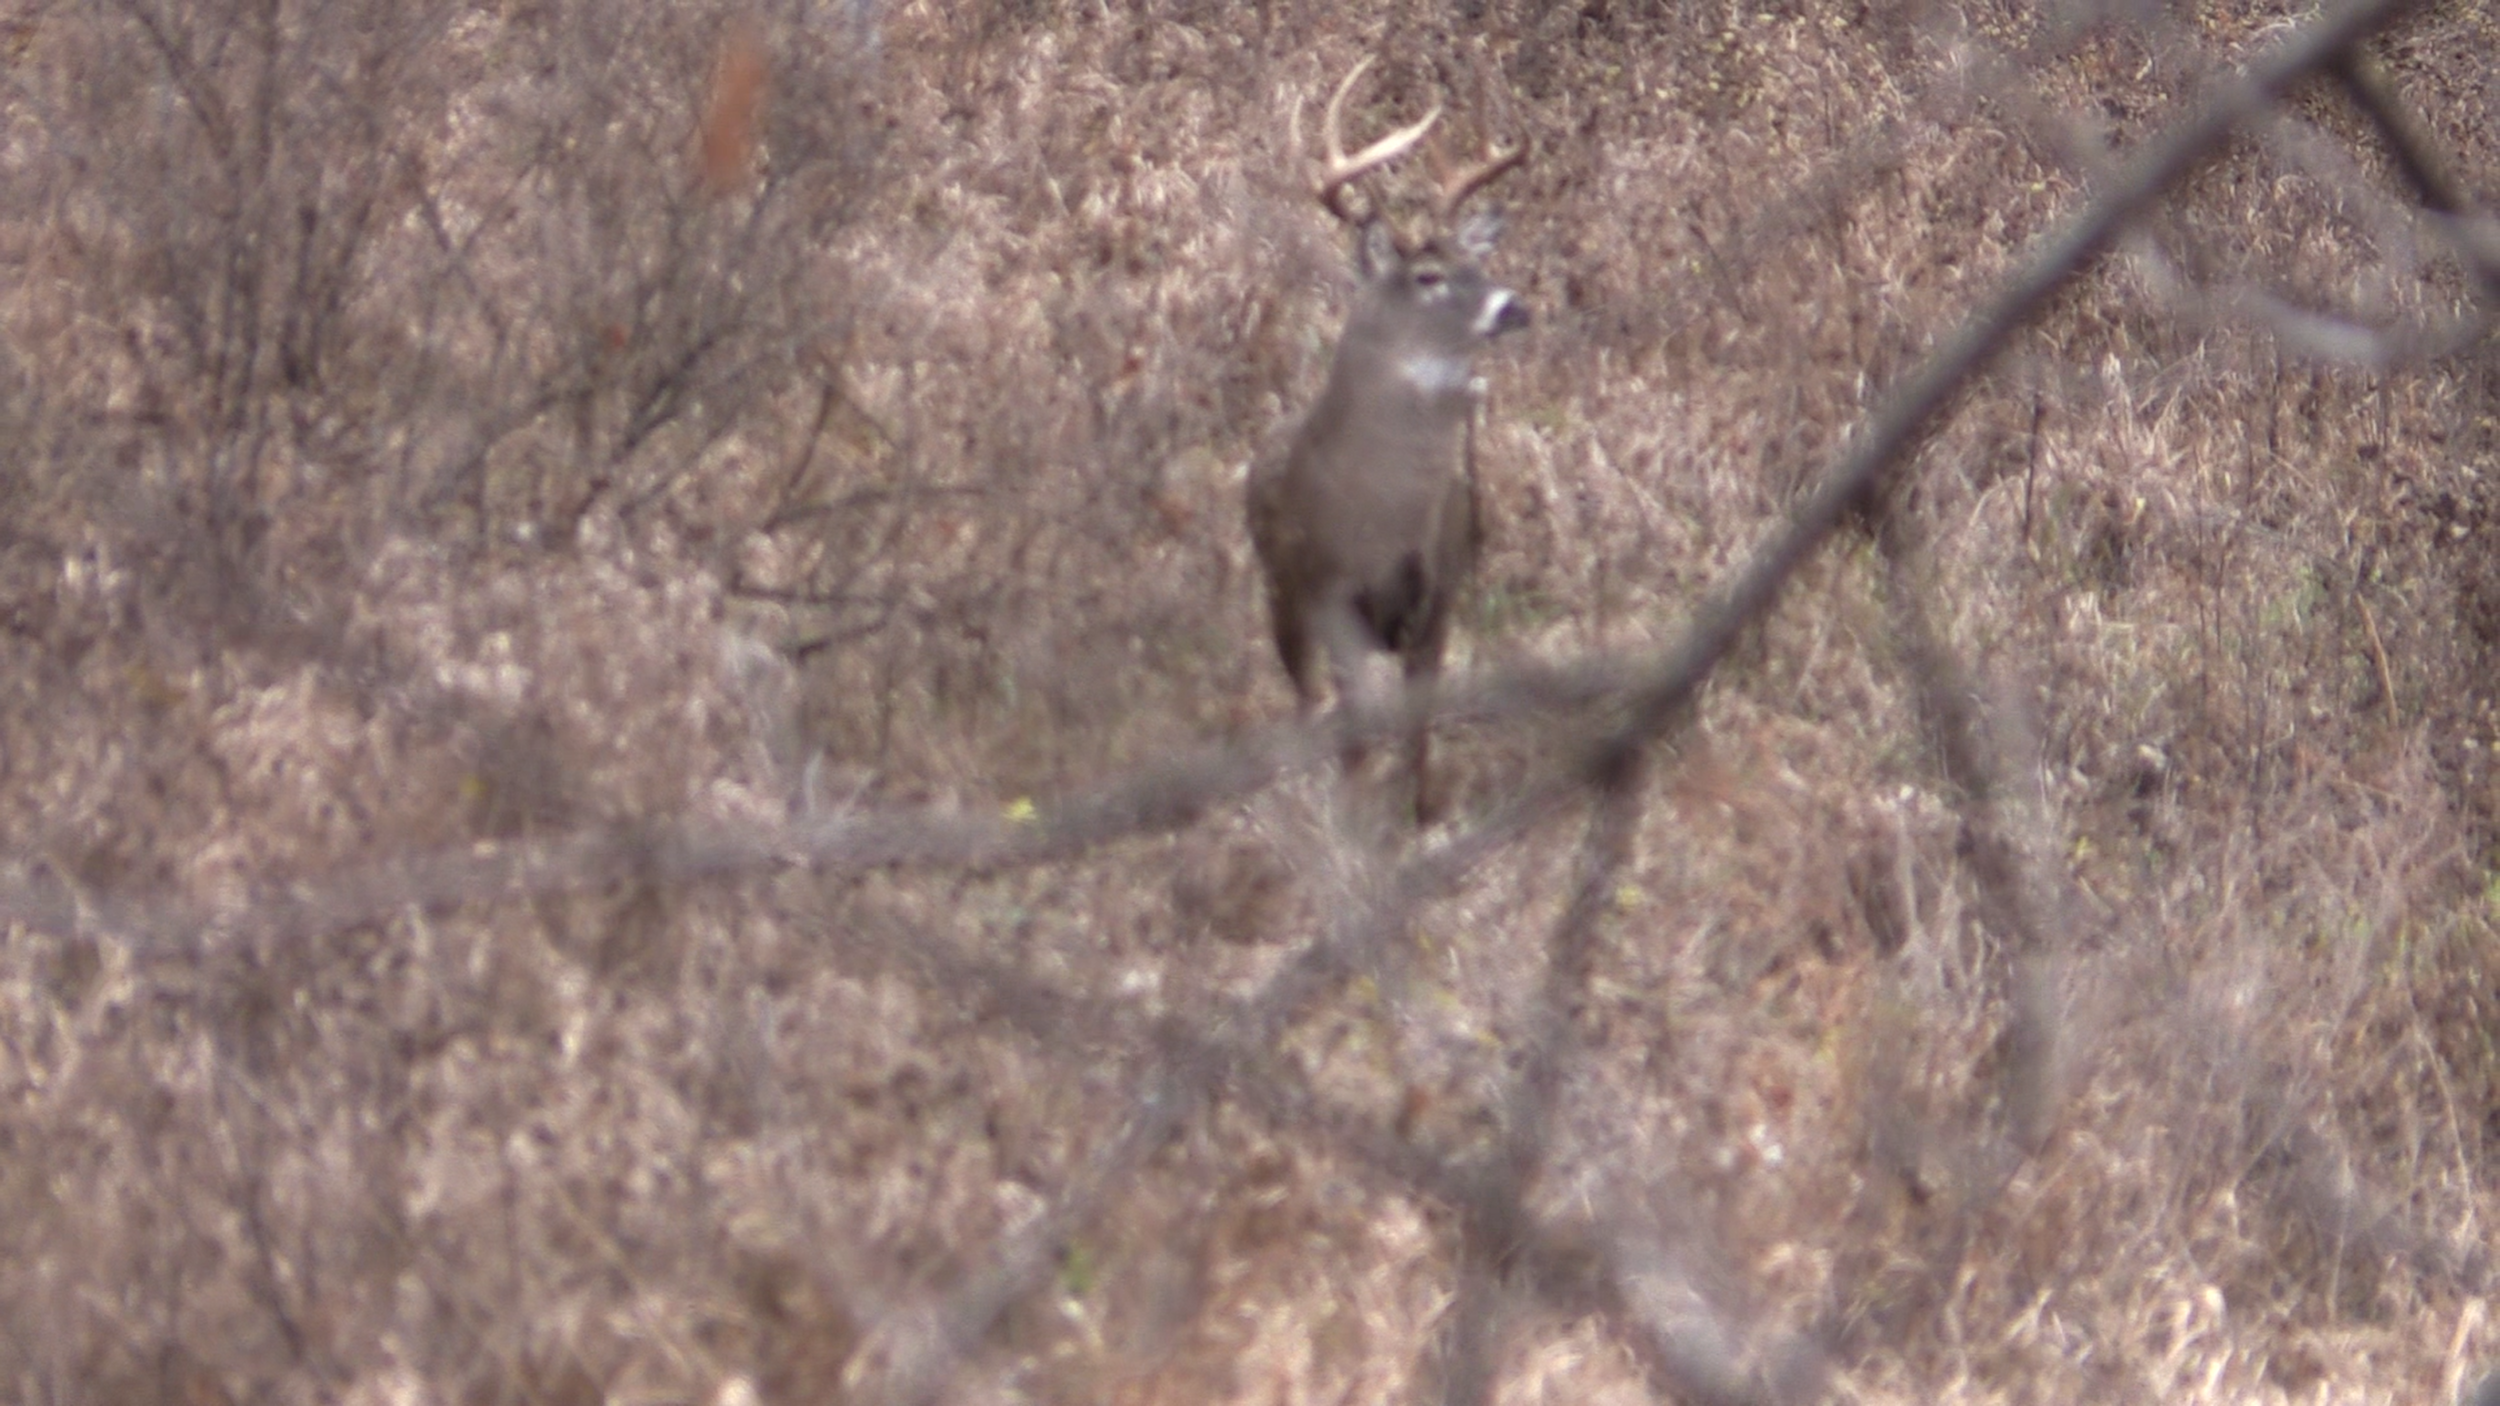 My first good look at the buck when he was roughly 60 yards away and headed right for me.